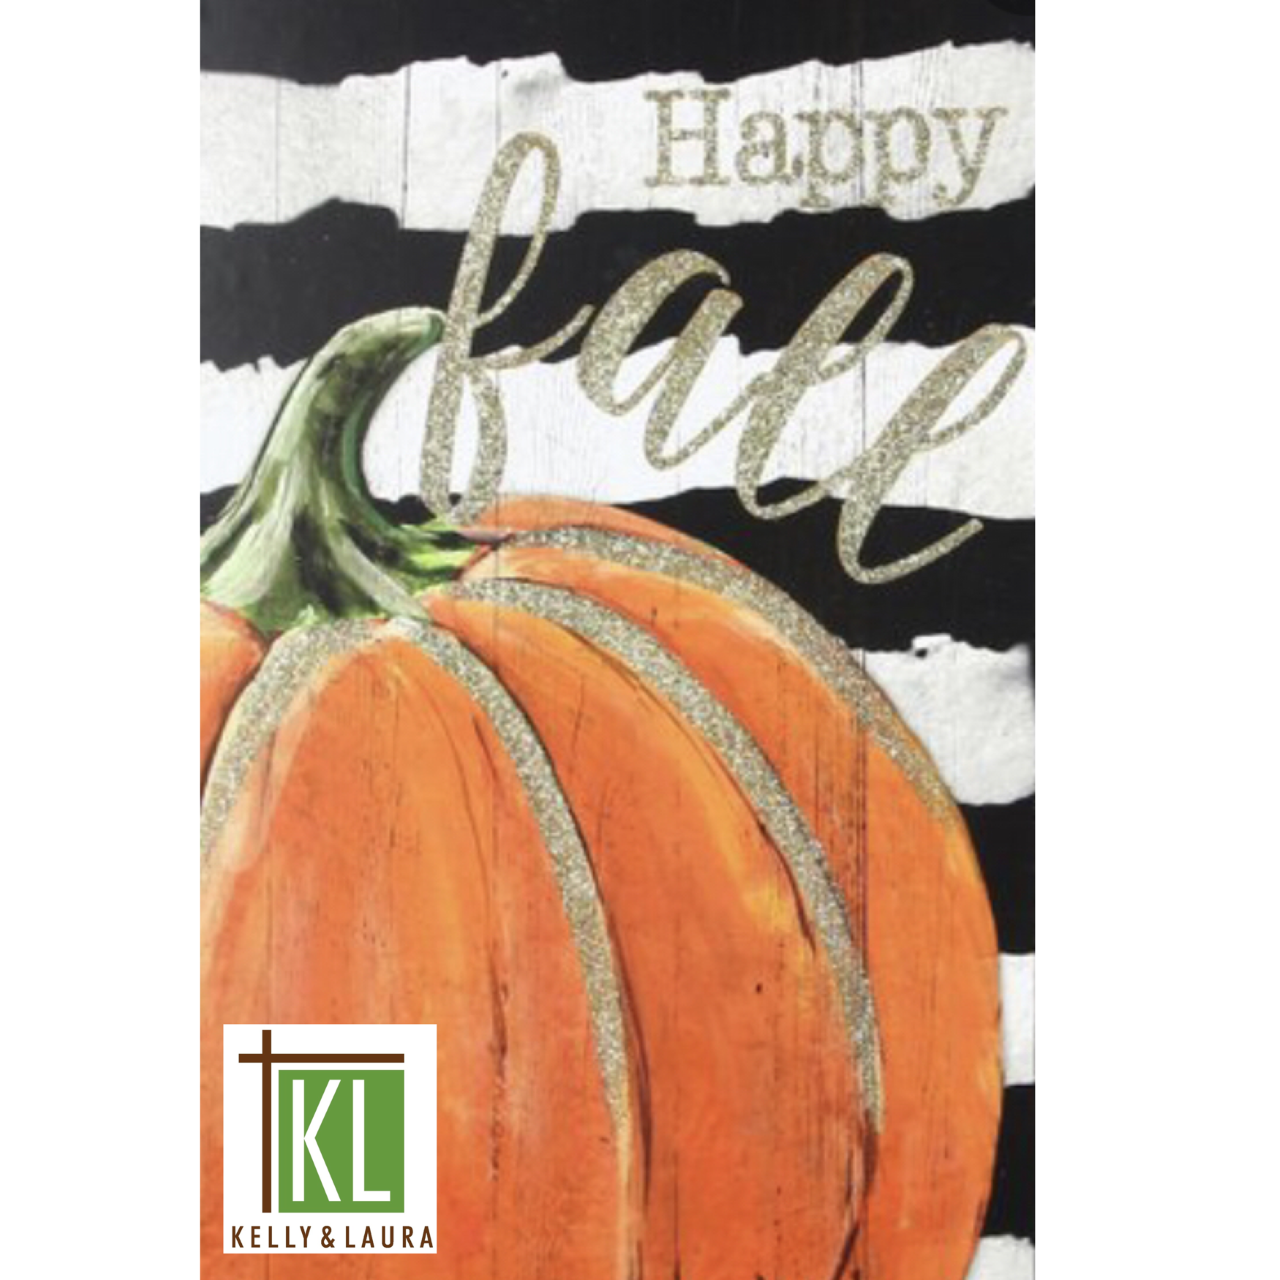 Call us to get a pumpkin delivered today!!